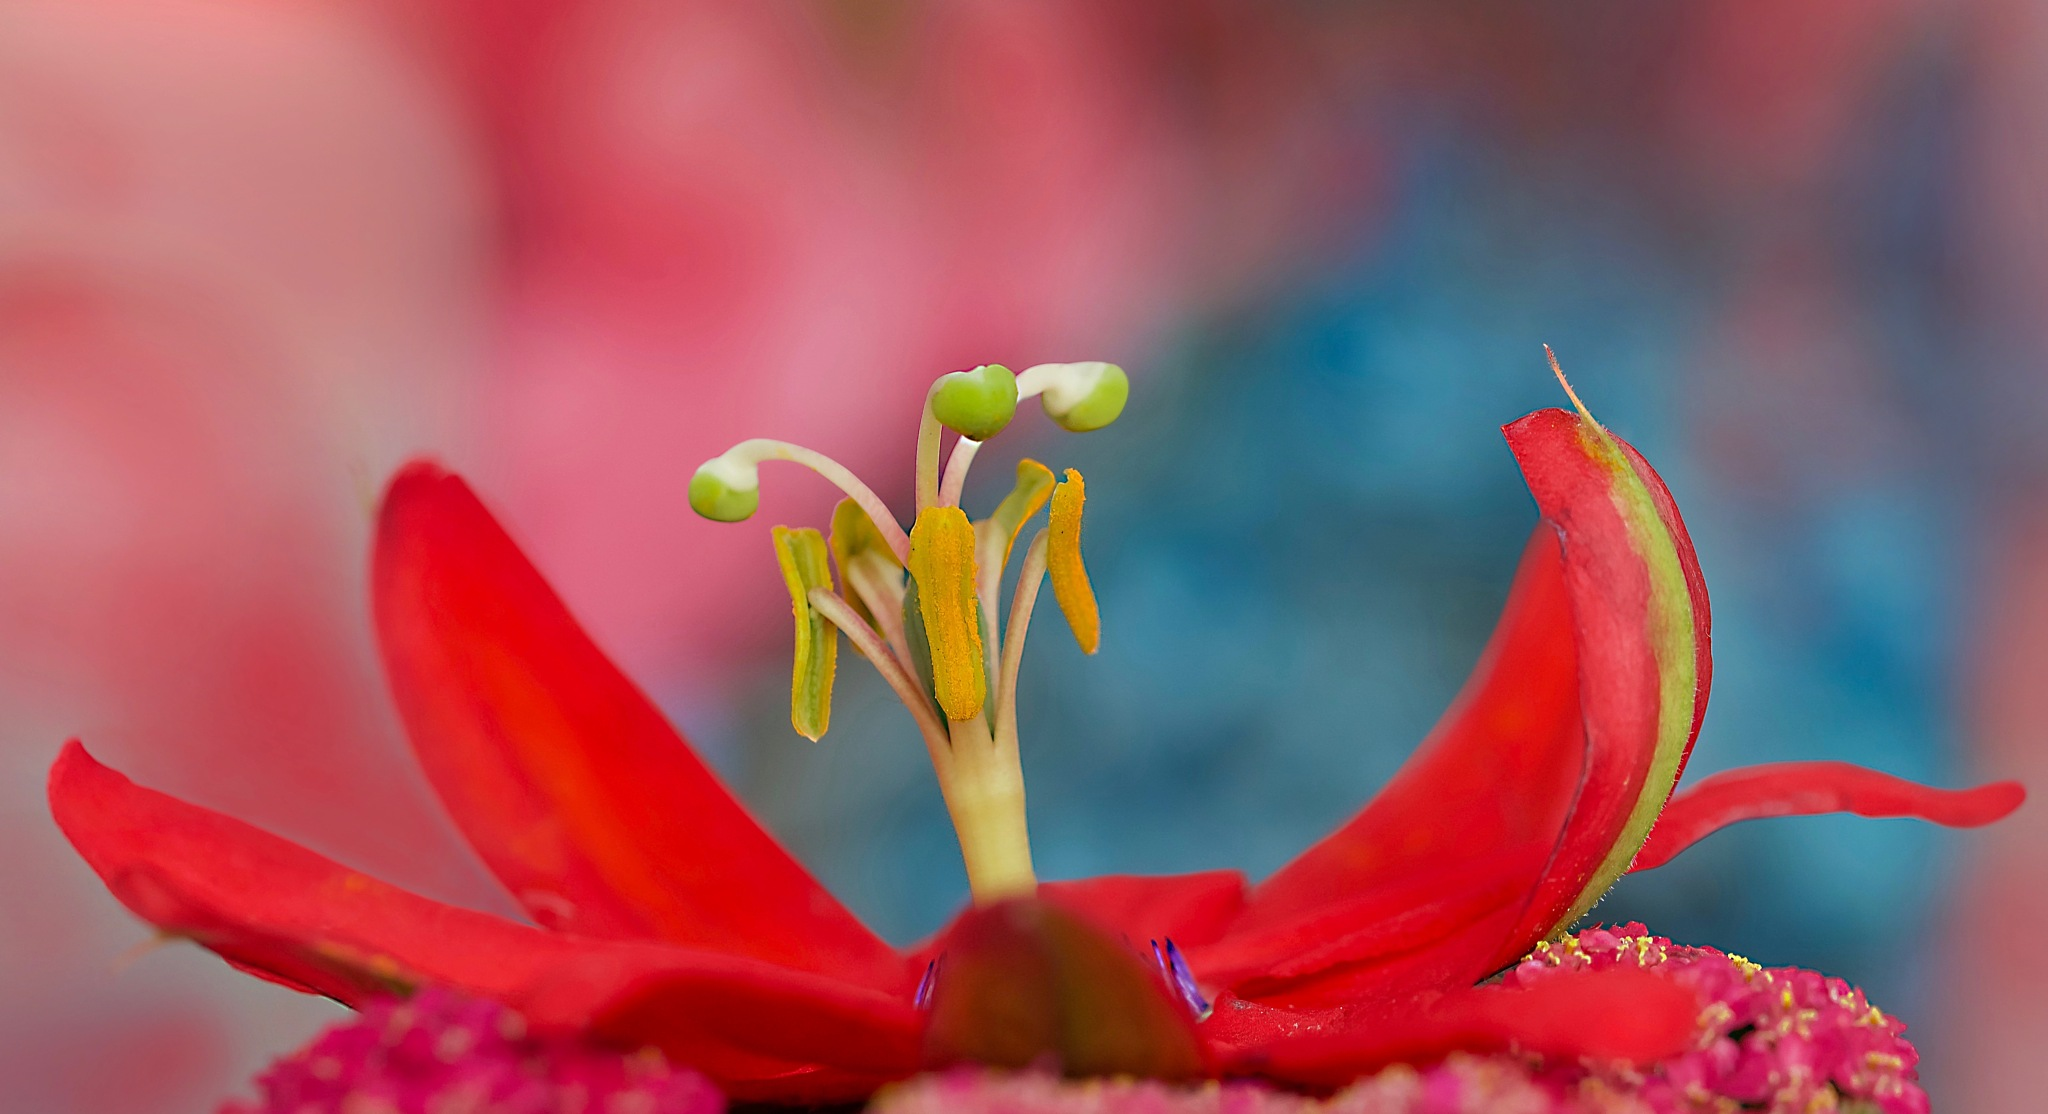 red passion by pam.simonsson